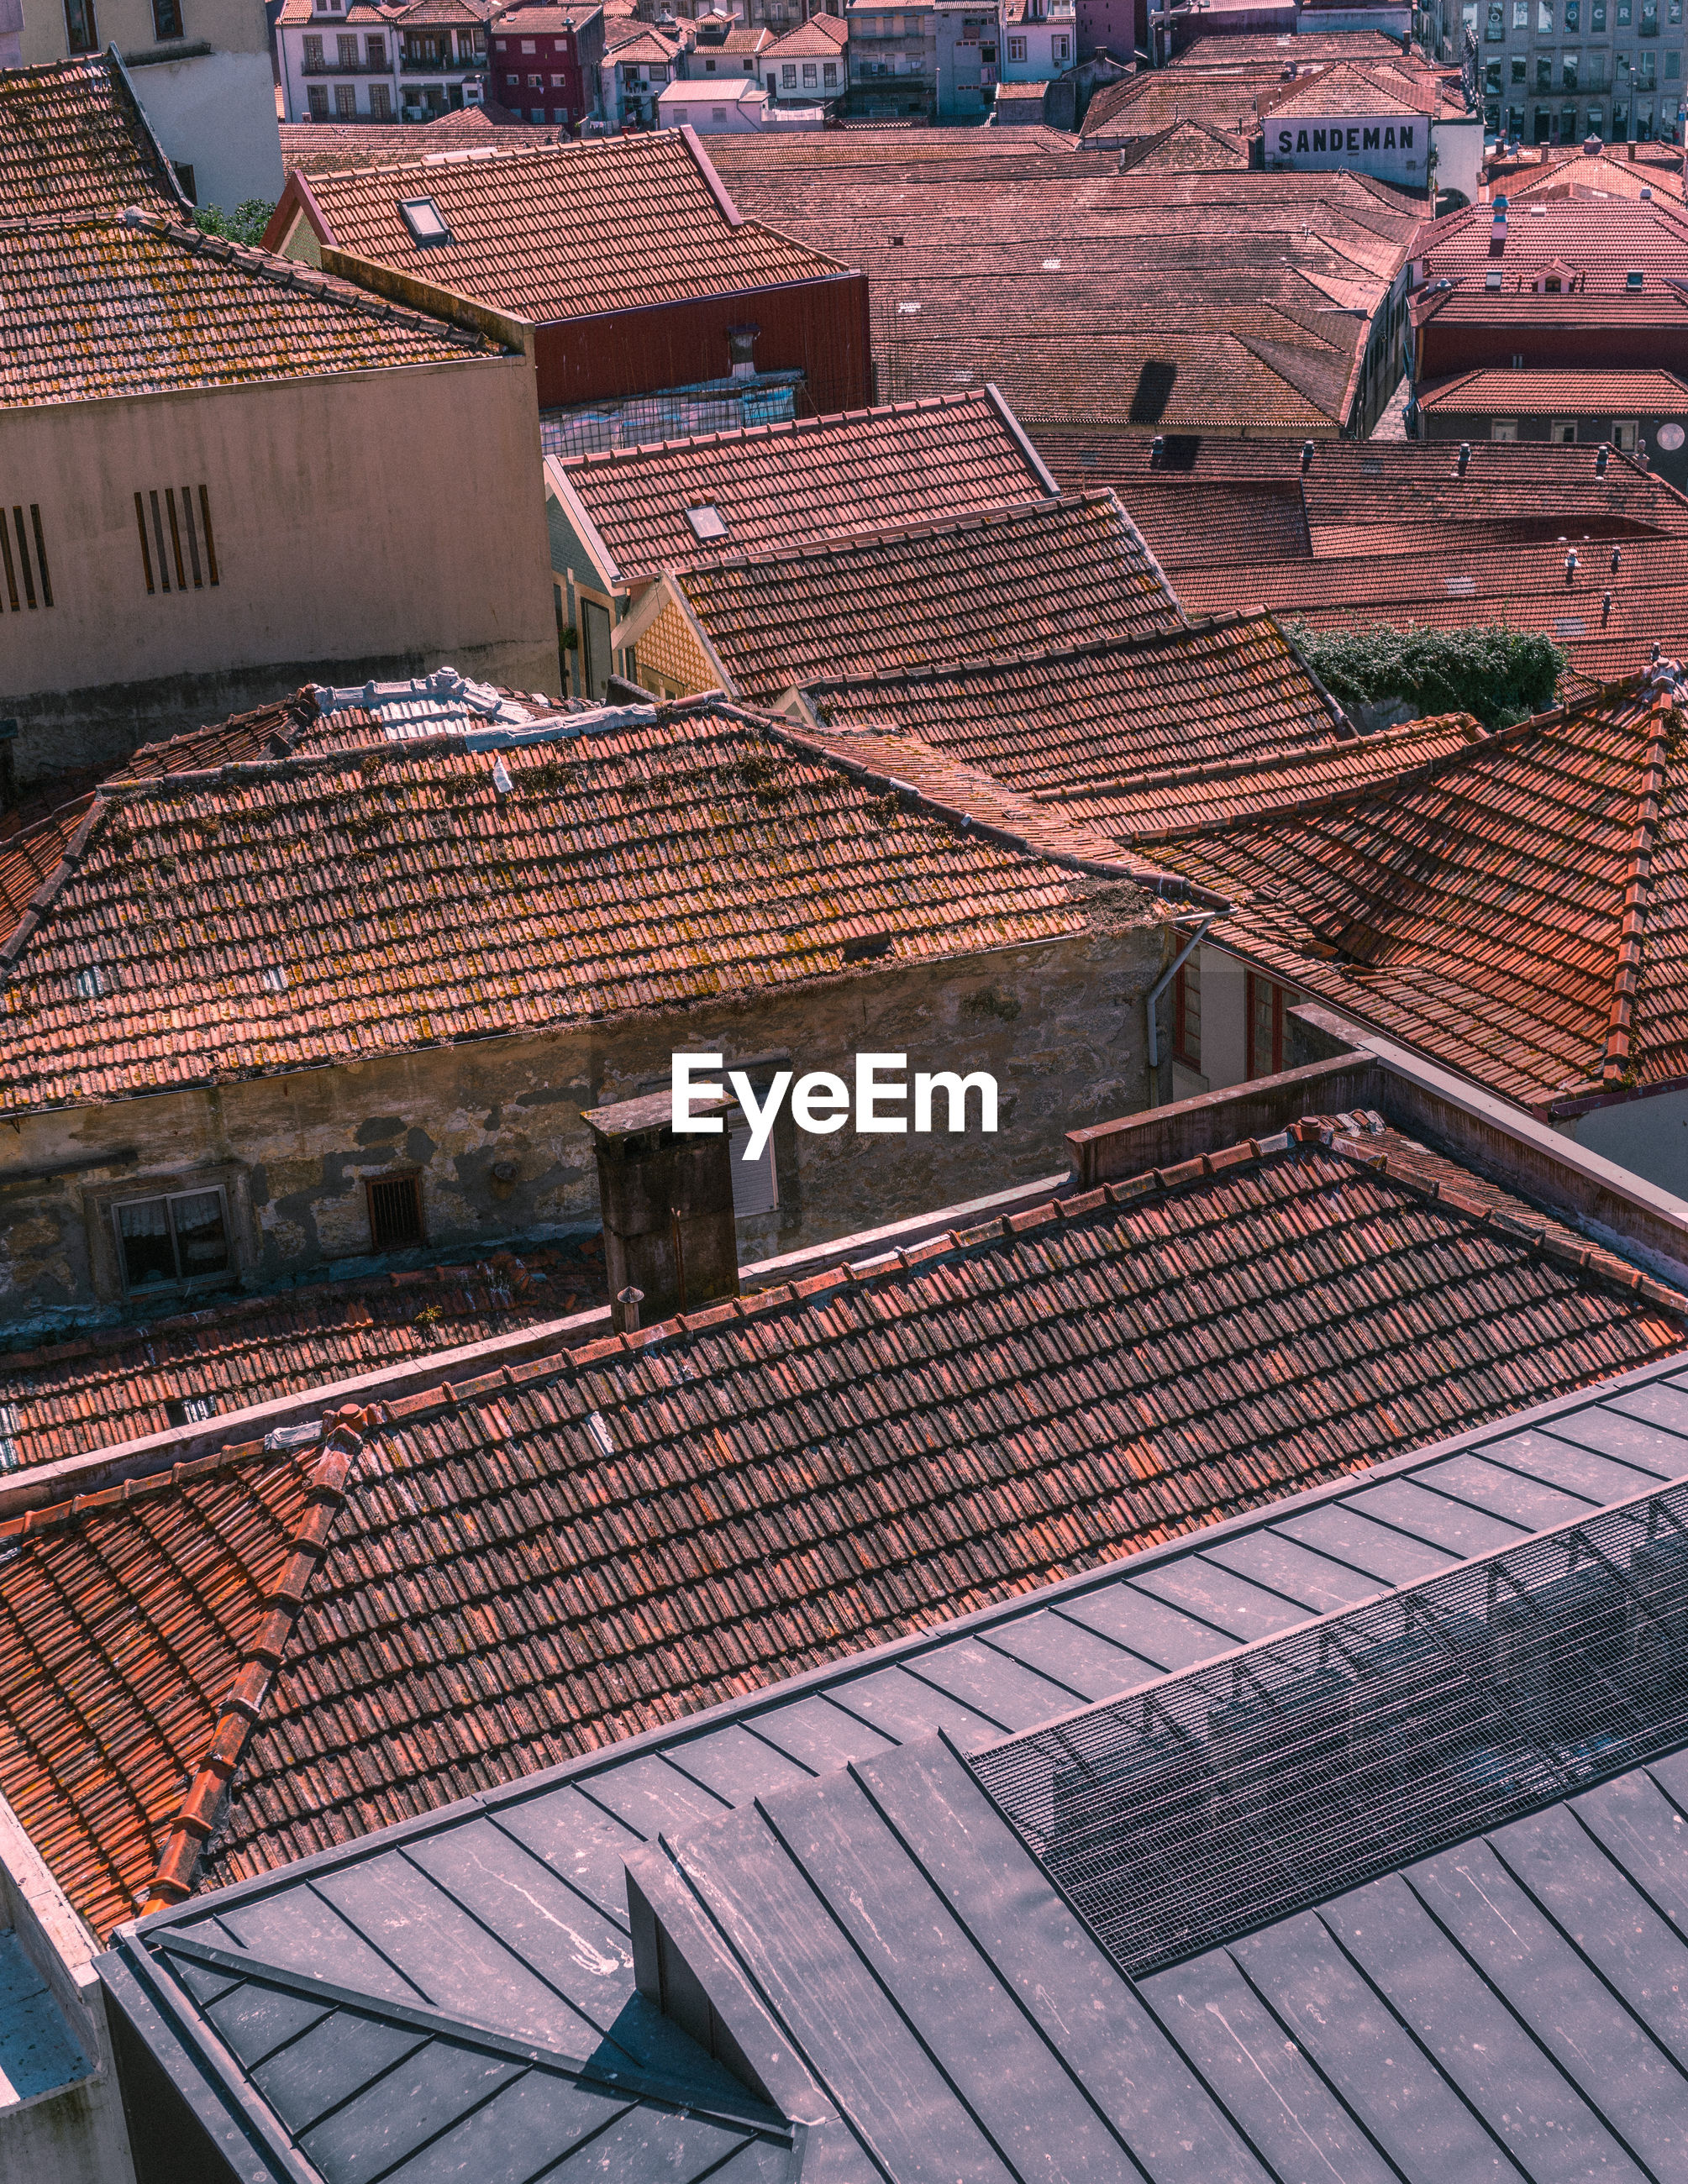 HIGH ANGLE VIEW OF ROOF TILES IN CITY